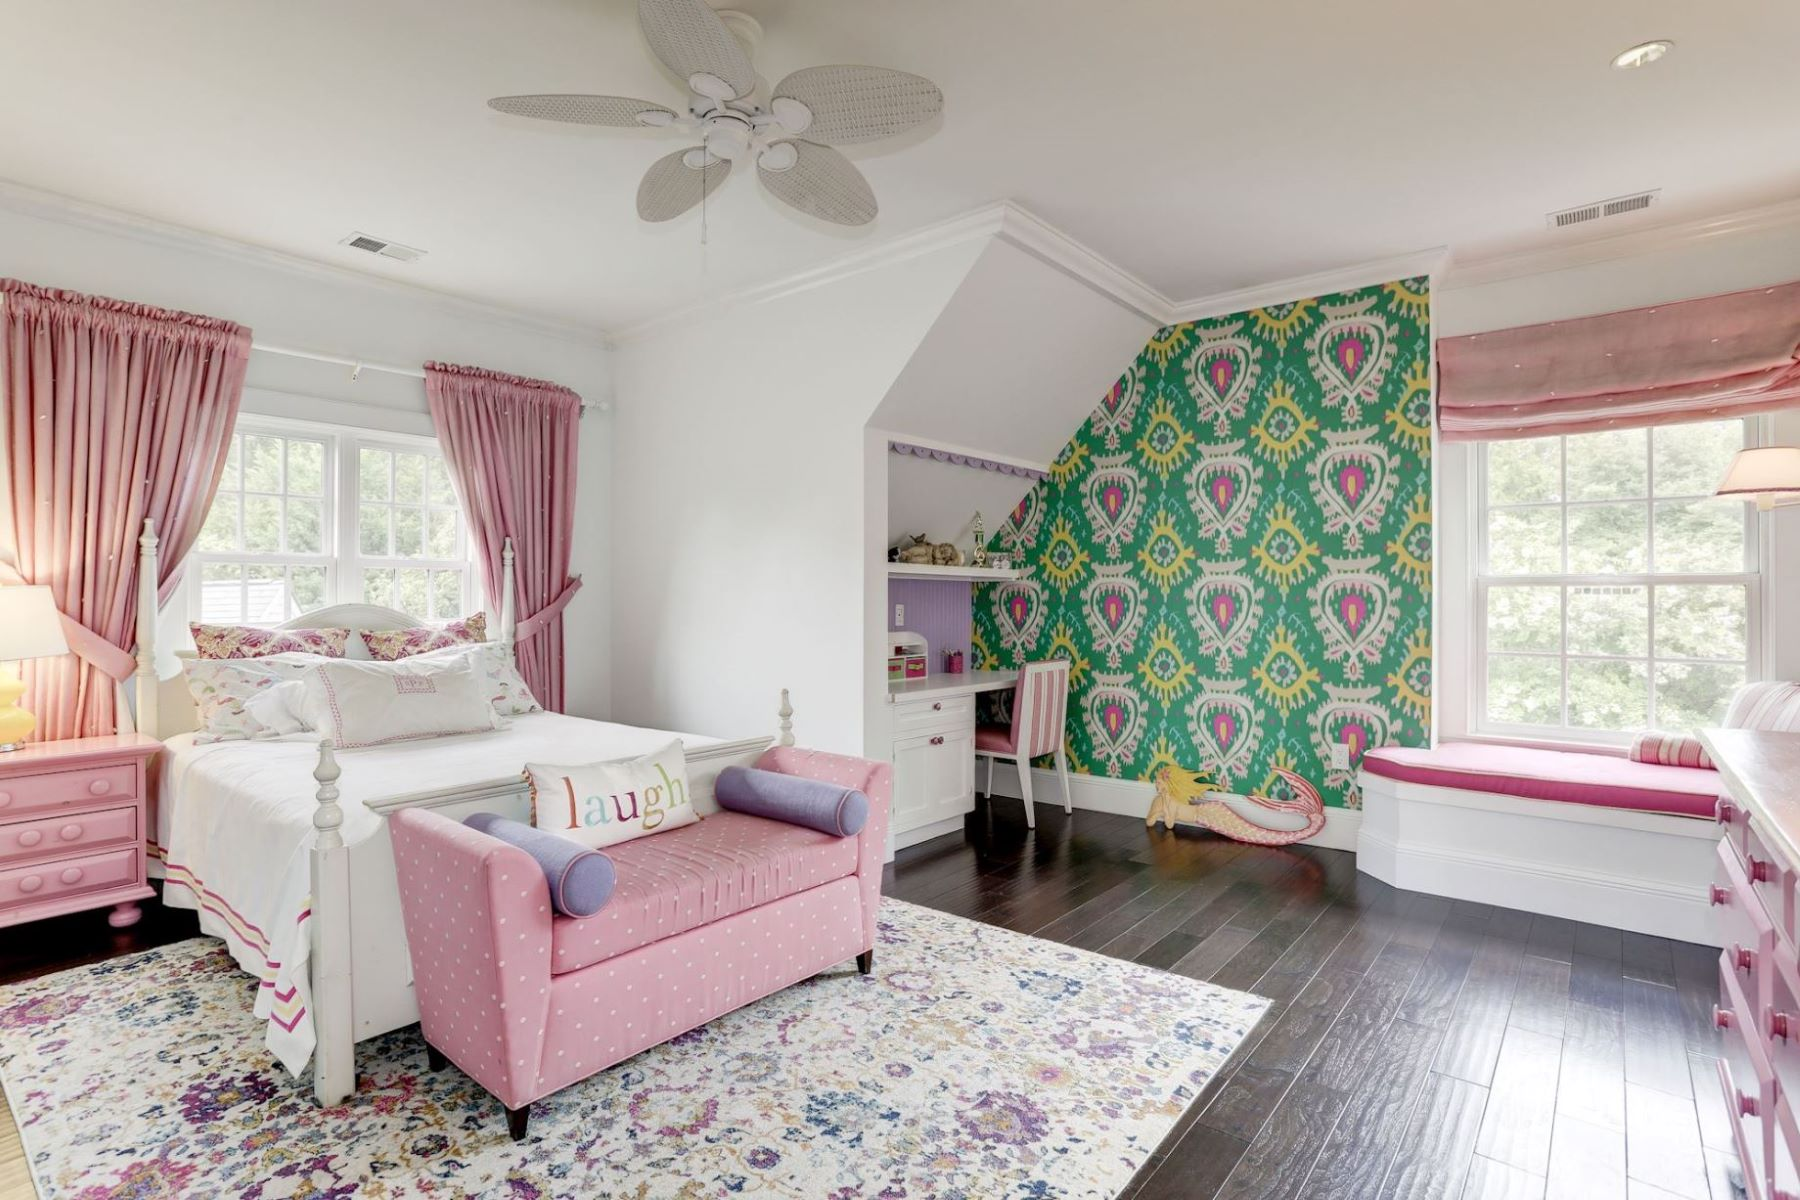 Additional photo for property listing at 752 Broadwater Way  Gibson Island, Maryland 21056 United States